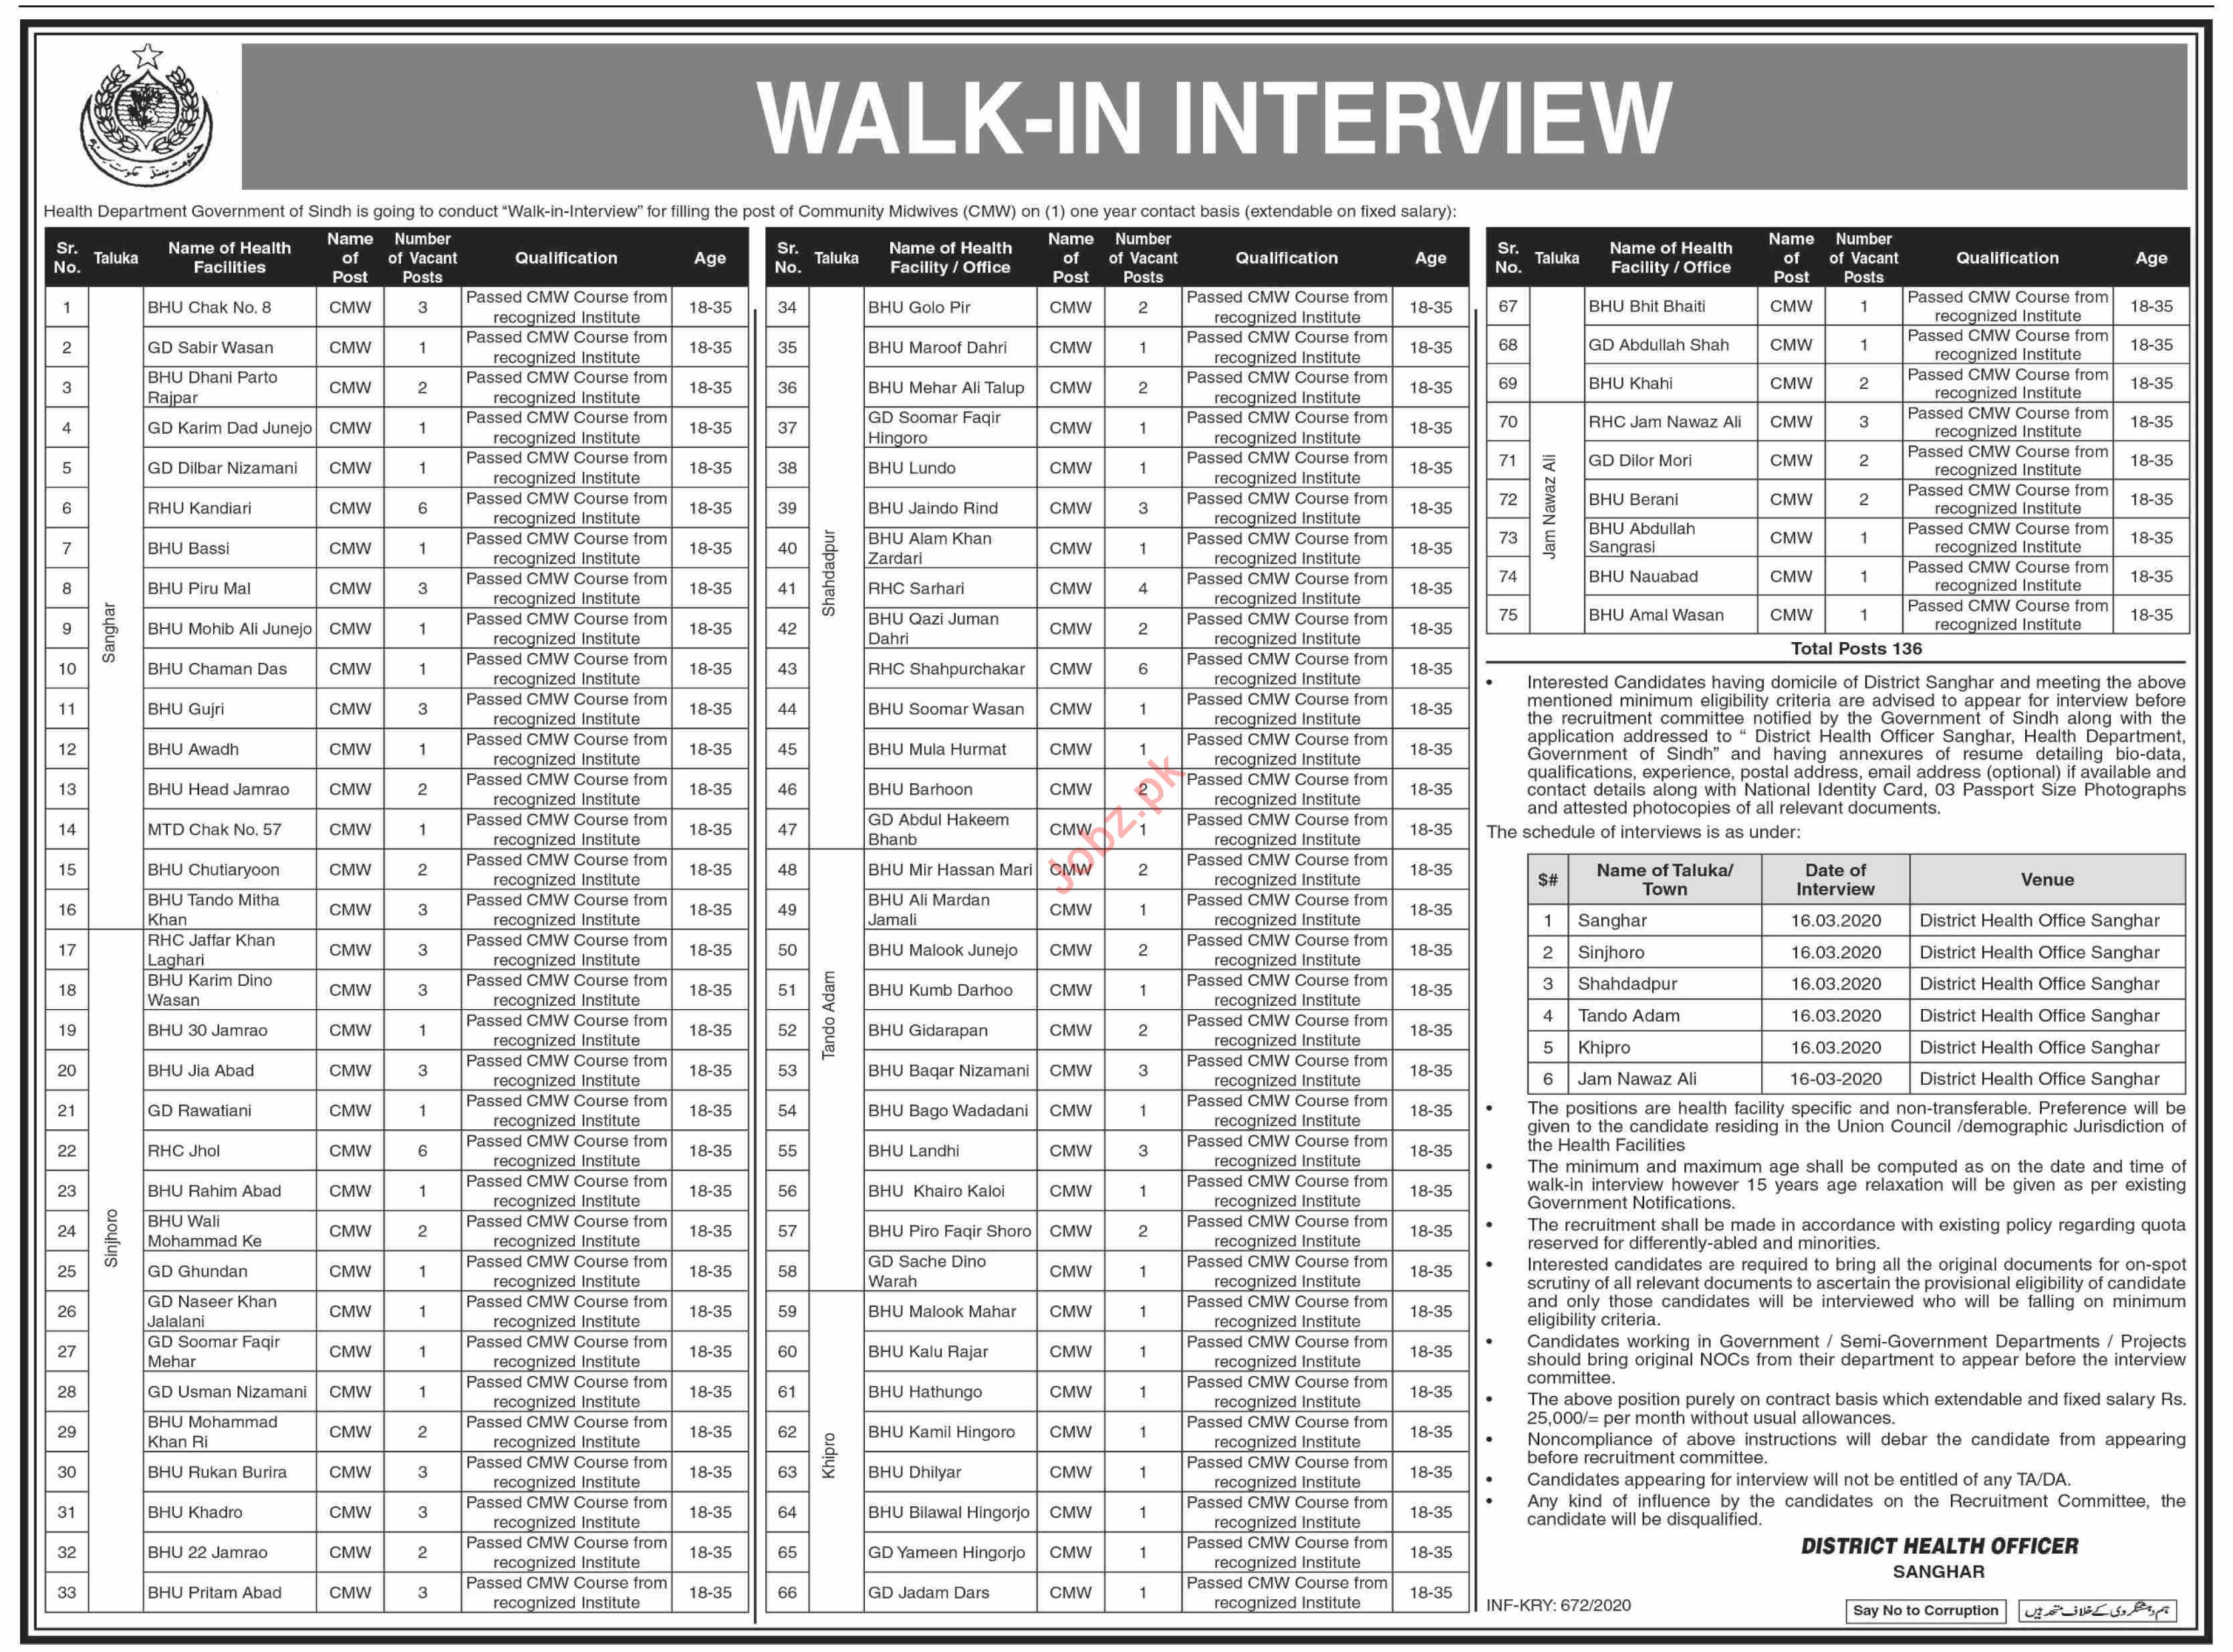 Health Department Sindh Walk in Interview 2020 for CMW